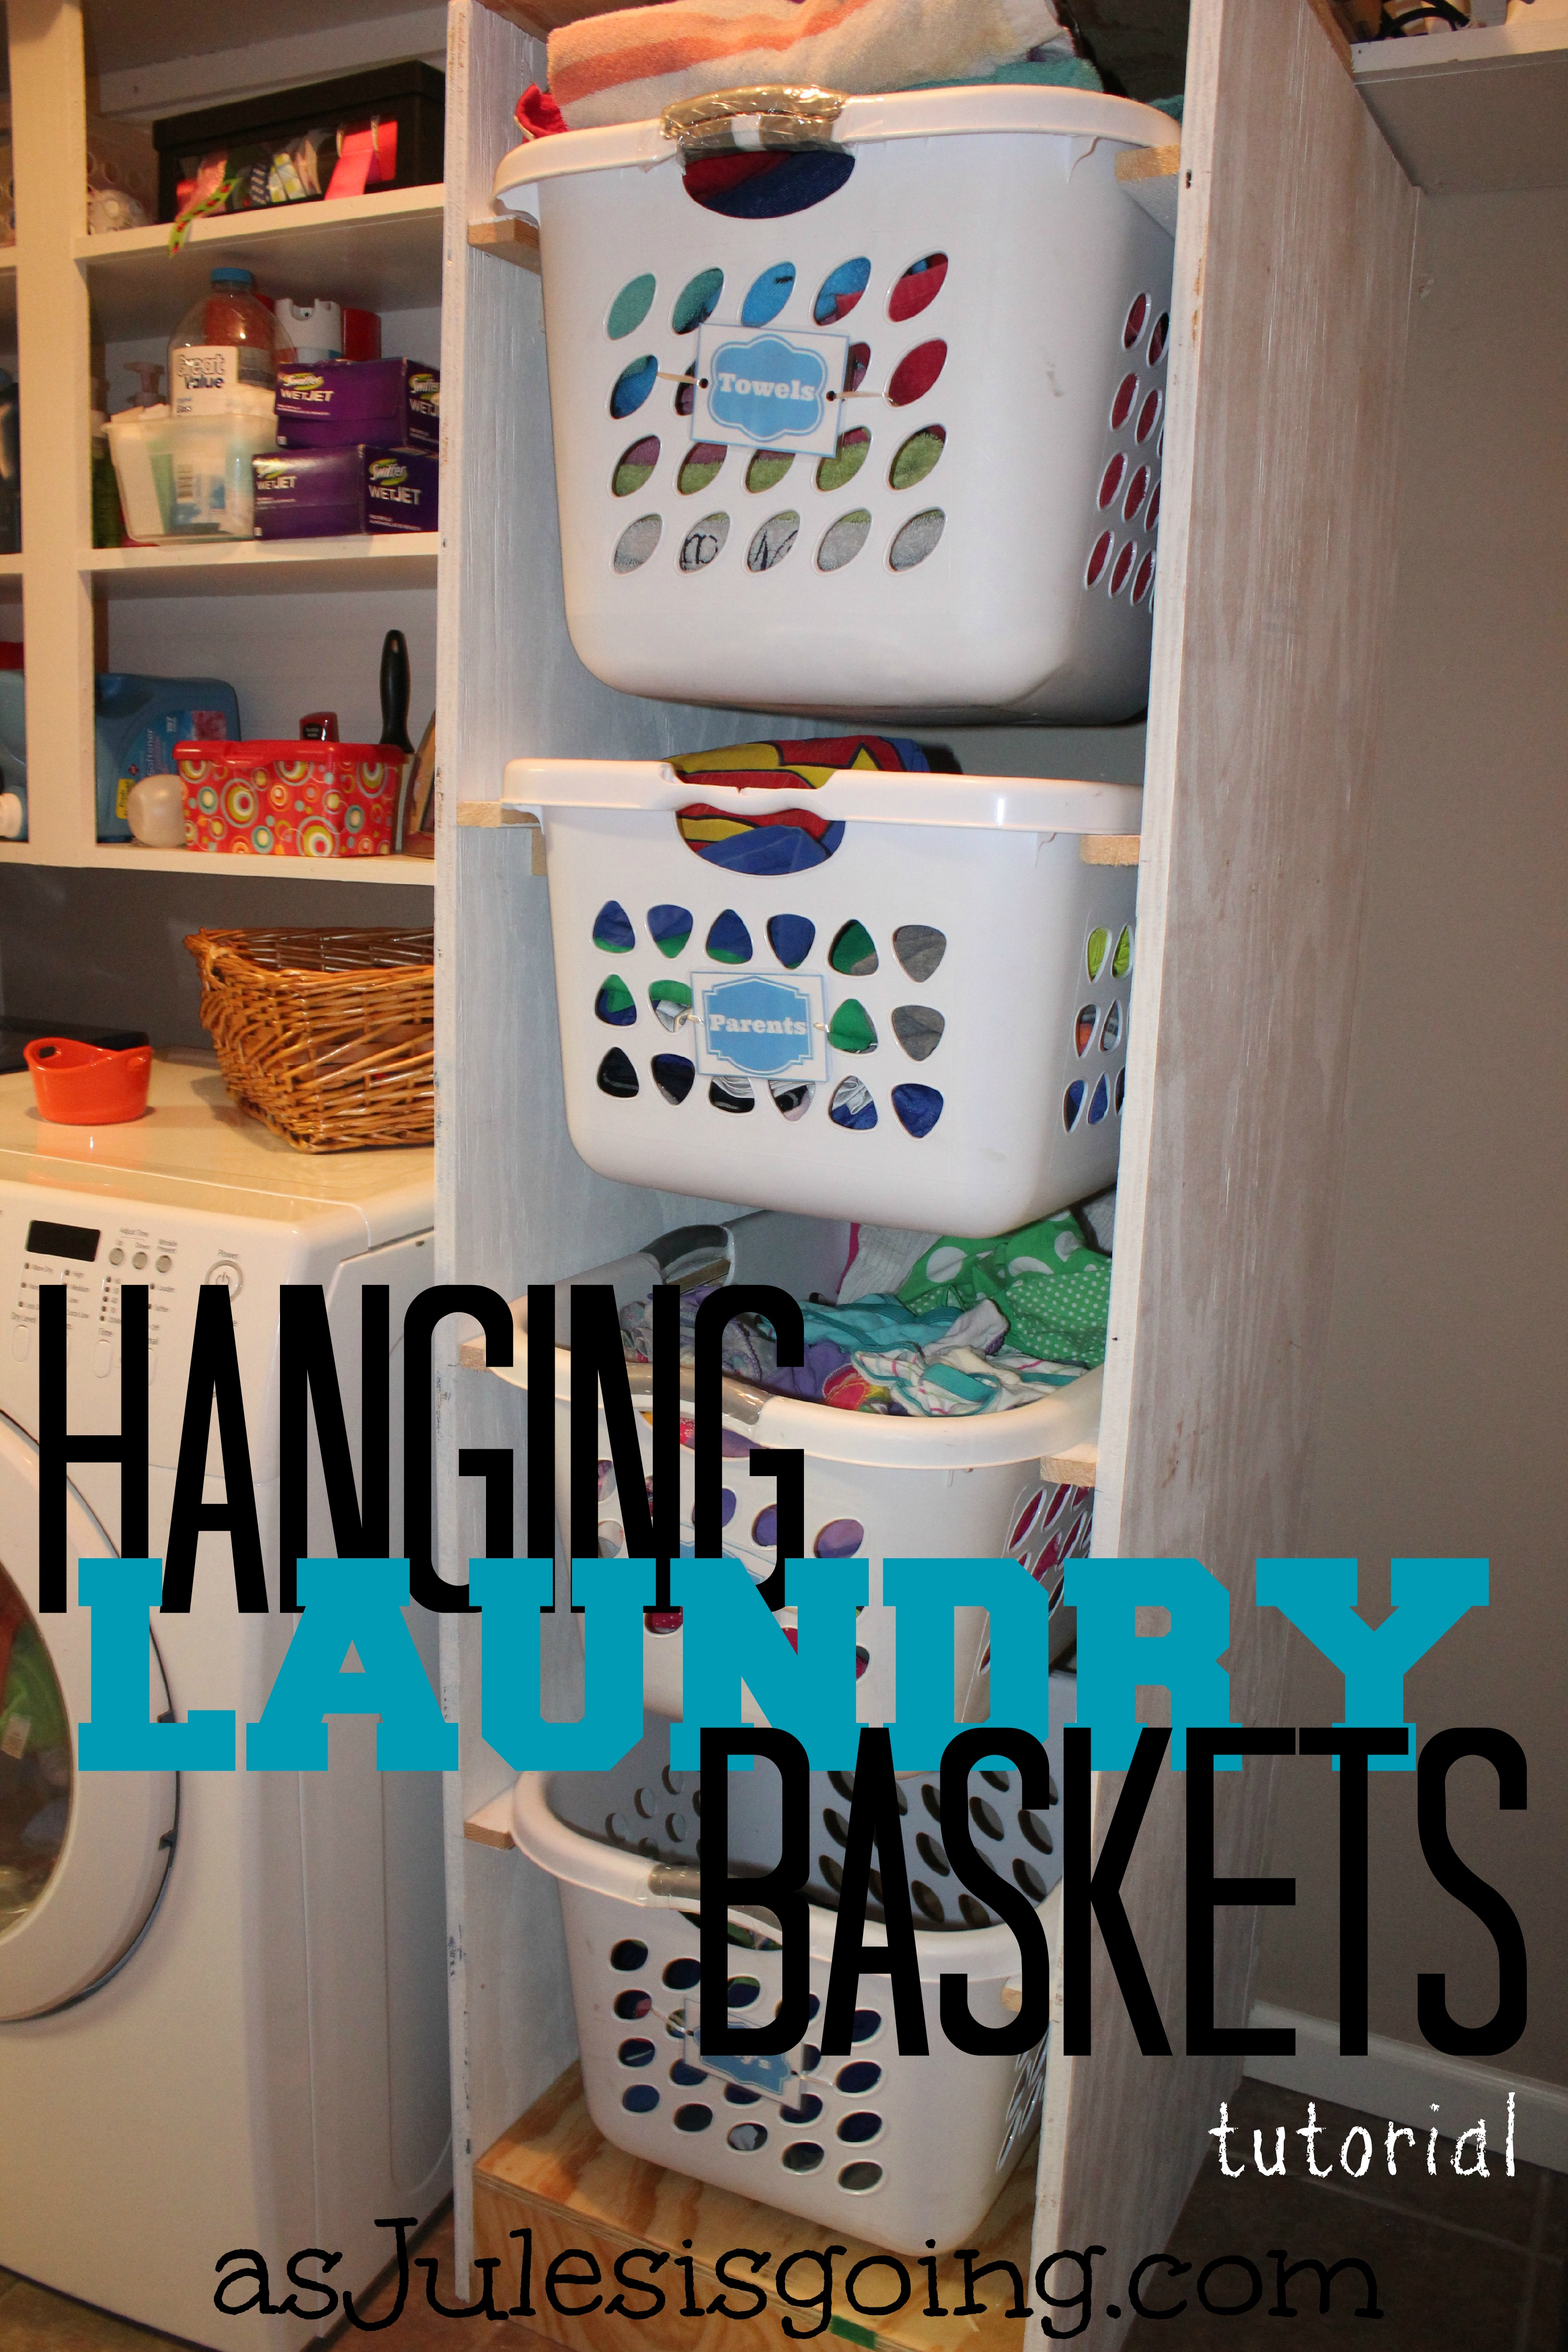 Hanging Laundry Baskets tutorial